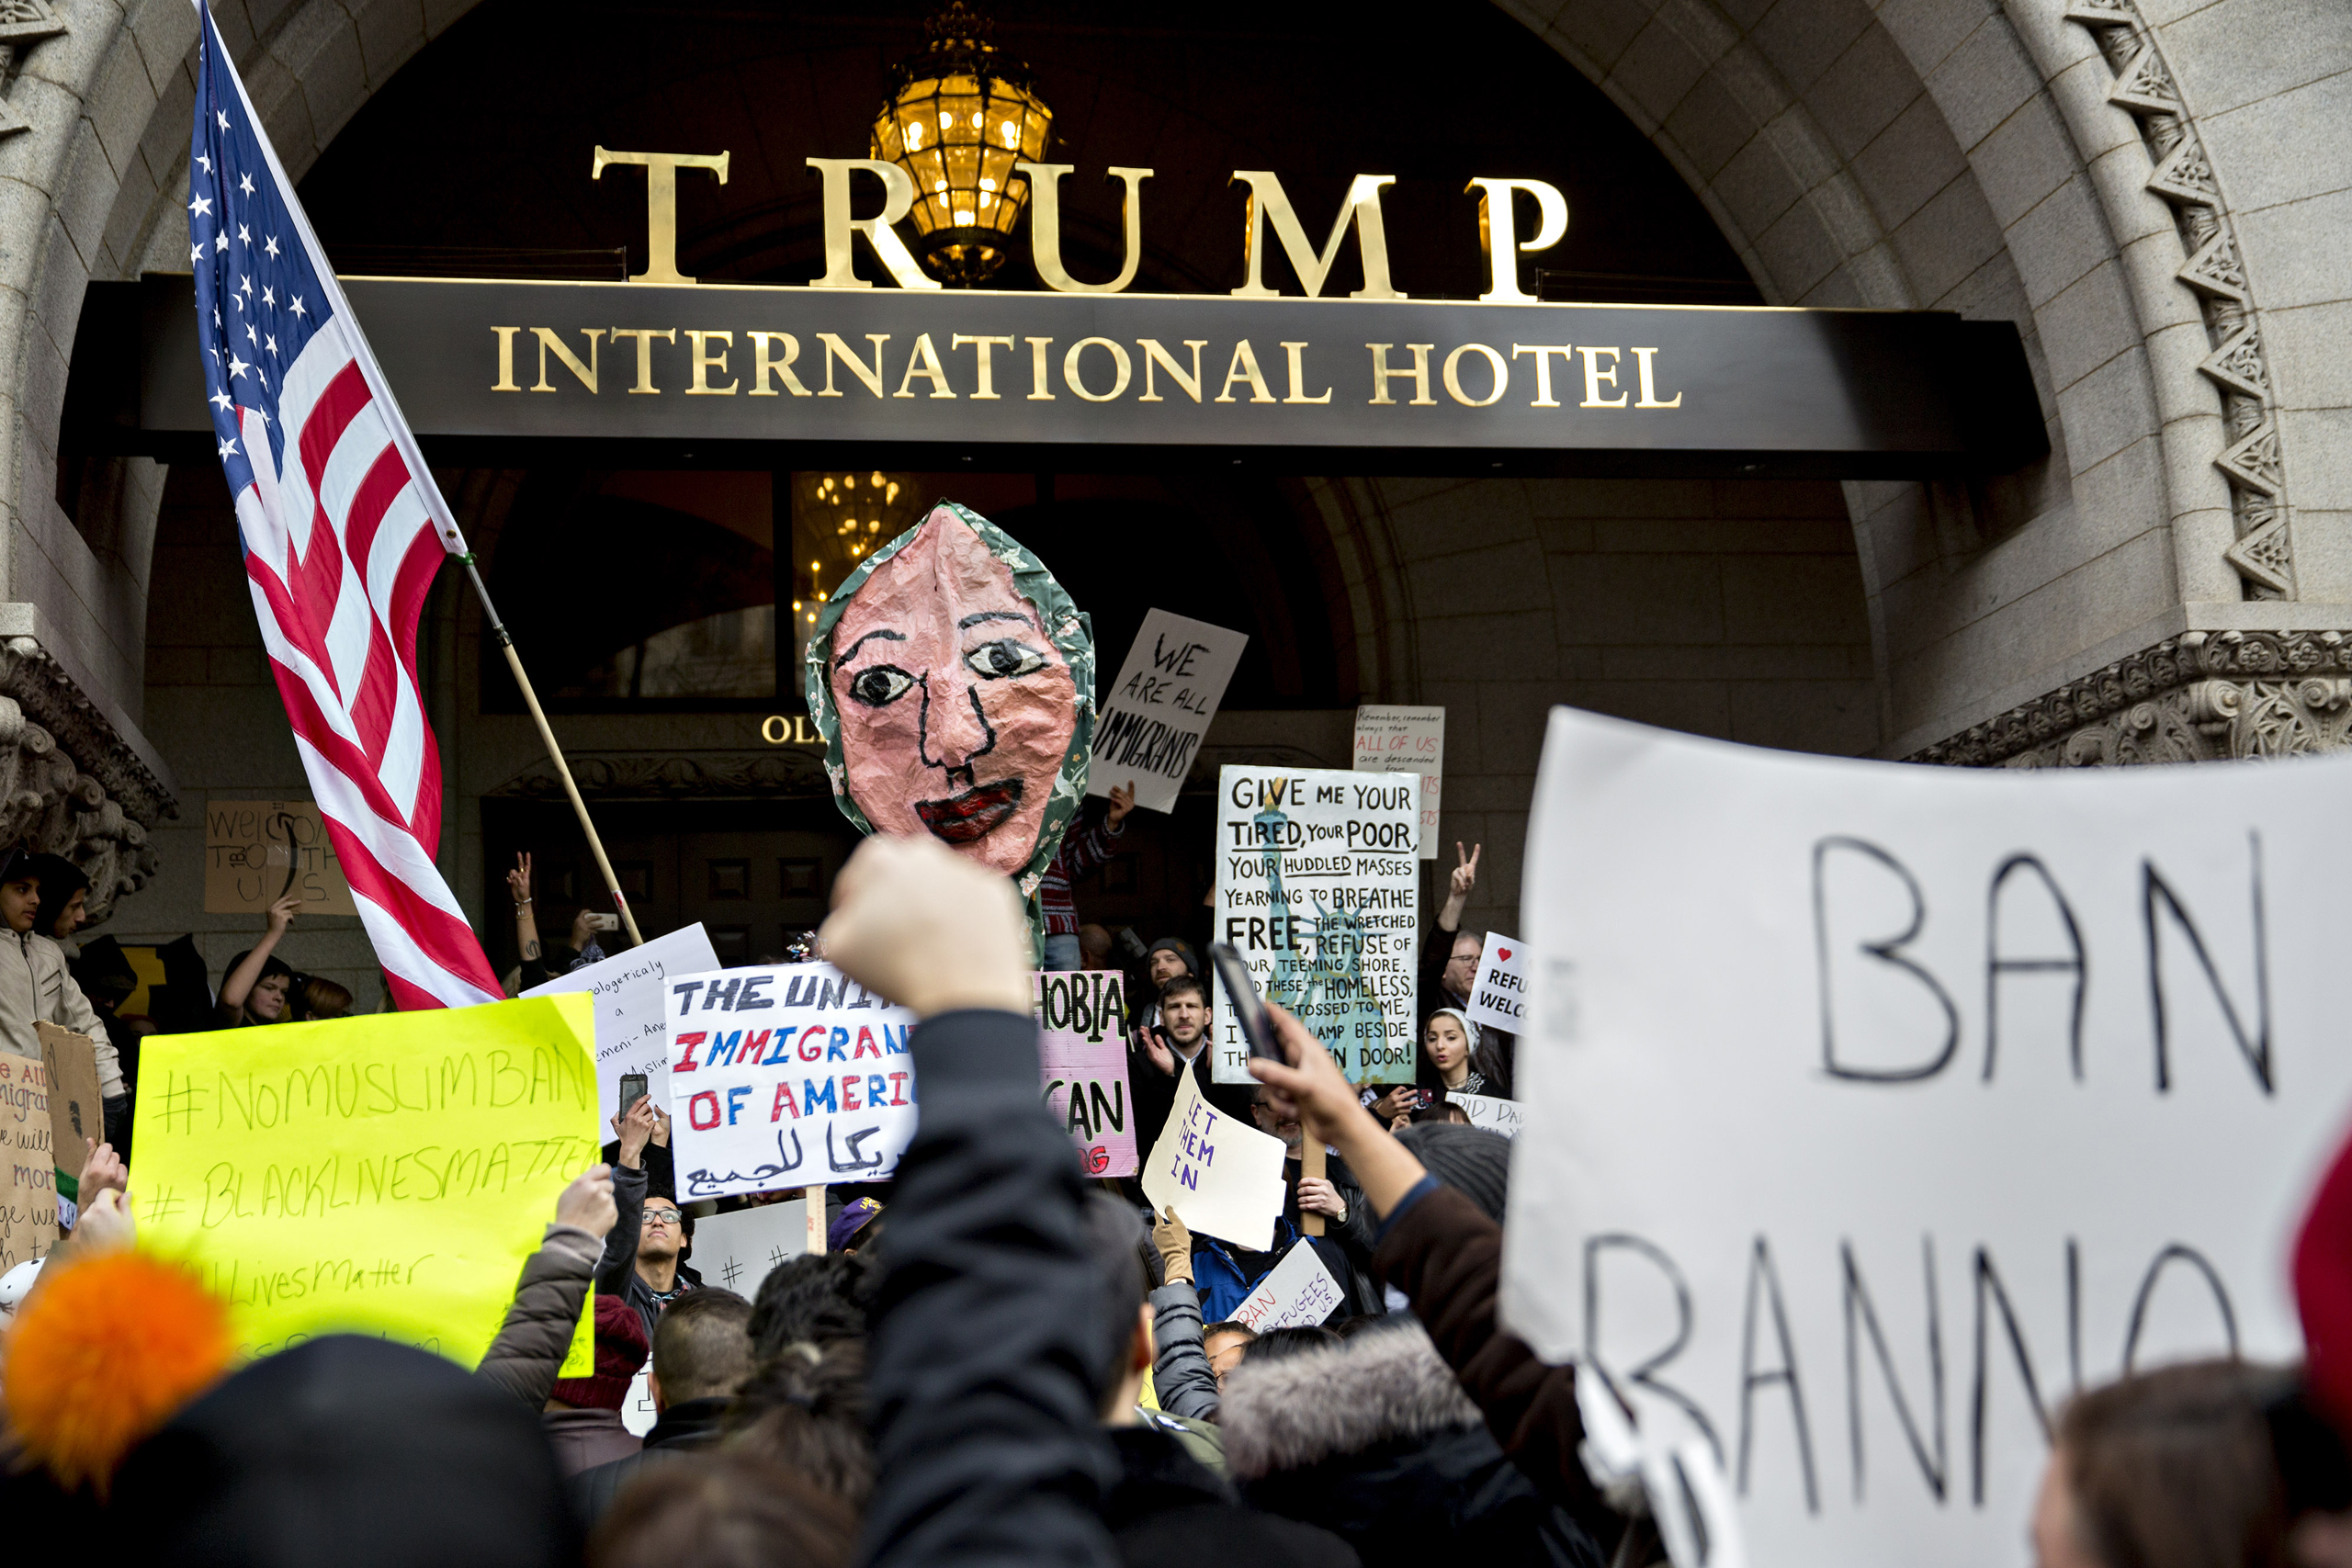 Demonstrators hold up a signs outside the Trump International Hotel during a protest against U.S. President Donald Trump's executive order blocking visitors from seven predominantly Muslim nations in Washington, D.C., on Jan. 29, 2017.